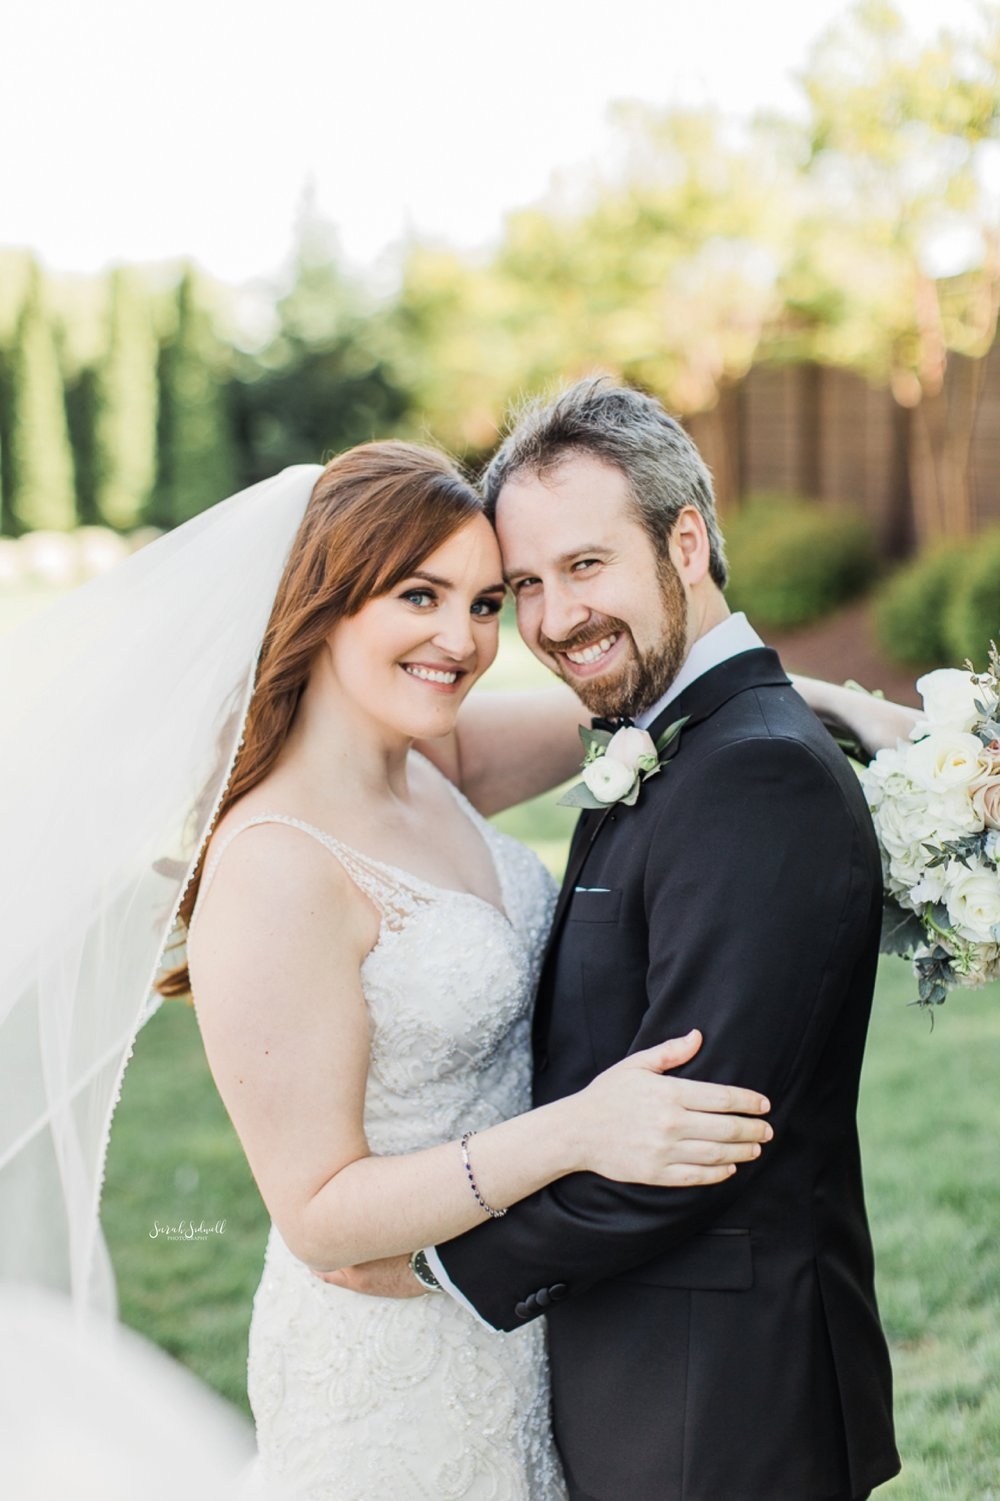 A man wraps his arms around his bride and smiles.